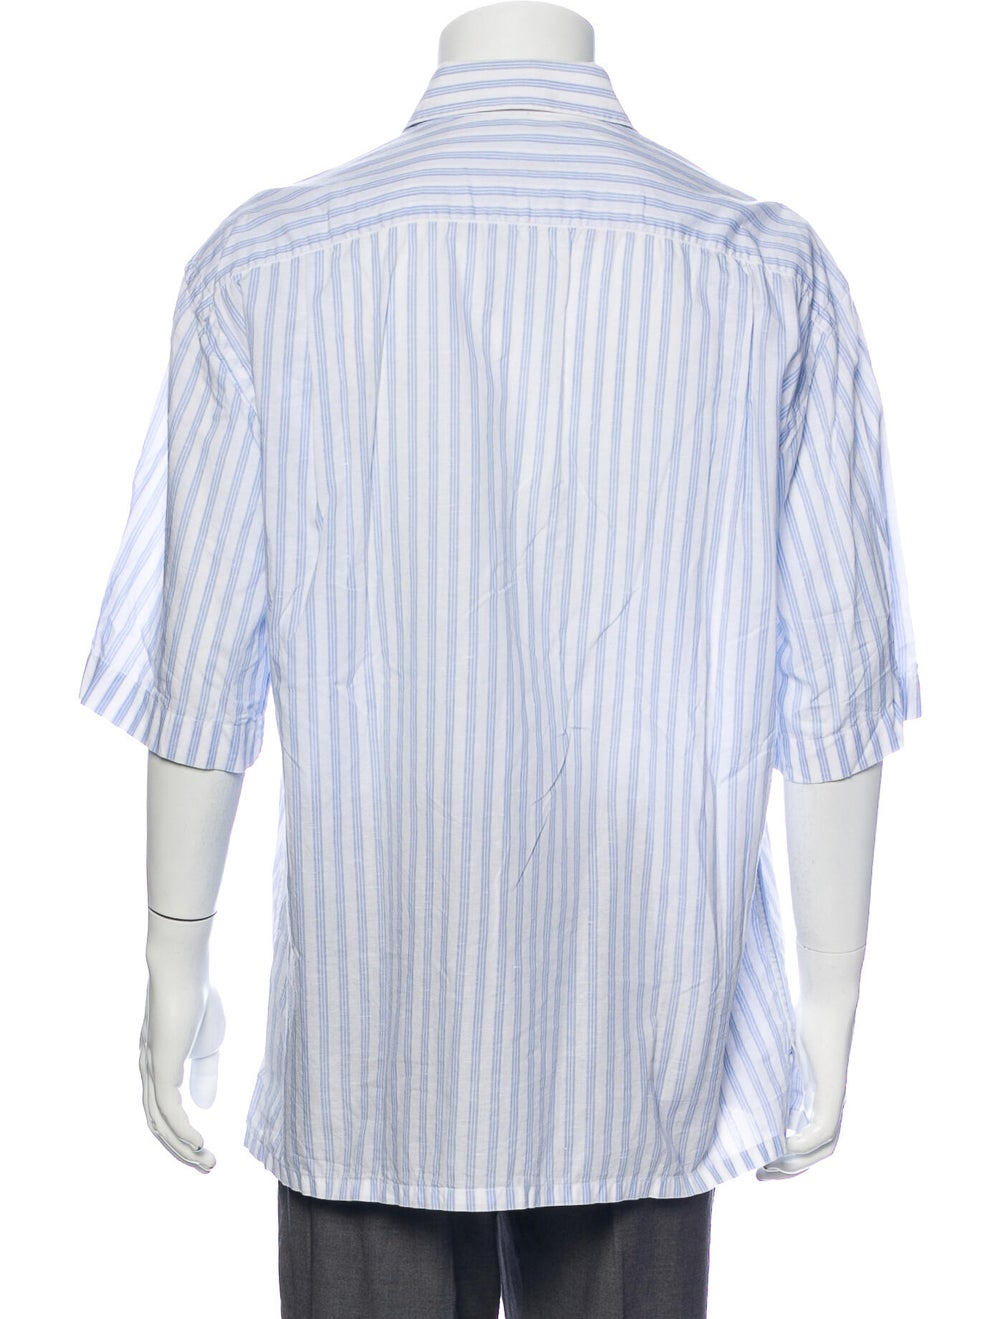 Brioni Striped Short Sleeve Shirt Blue - image 3